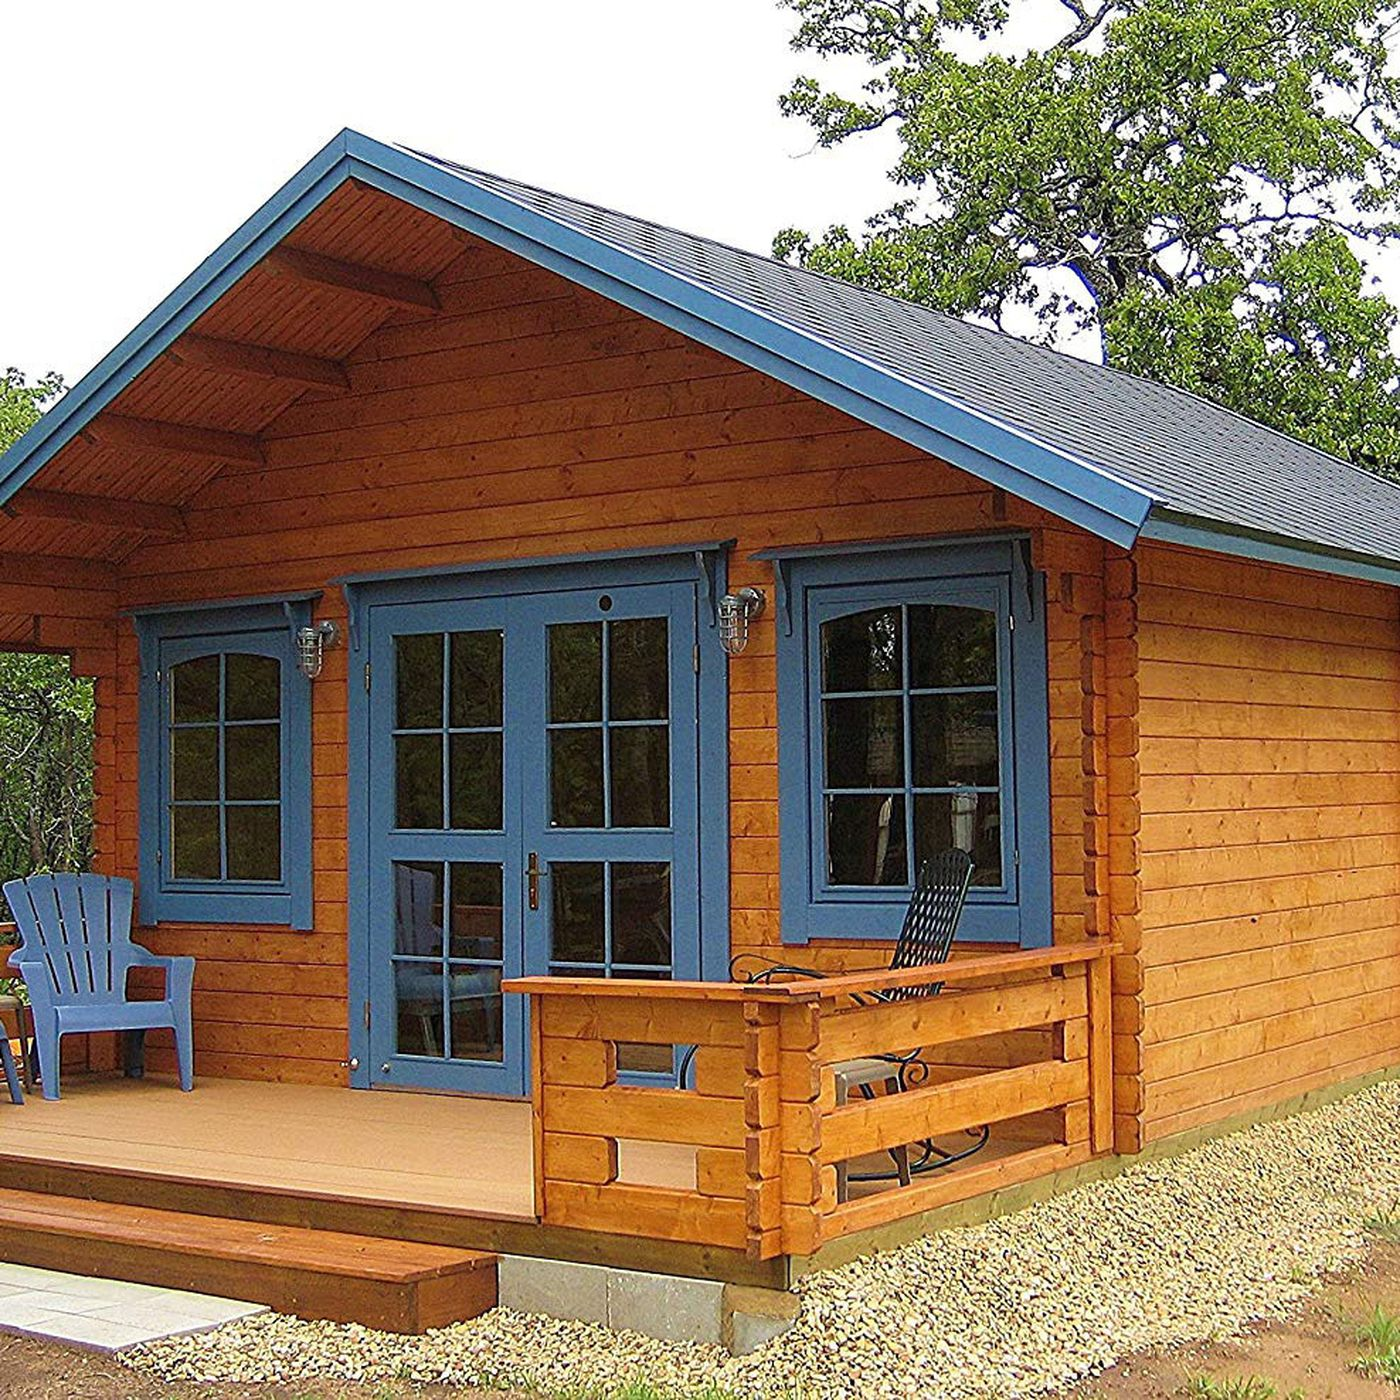 Tiny houses for sale on Amazon: Cabins, shipping containers, and